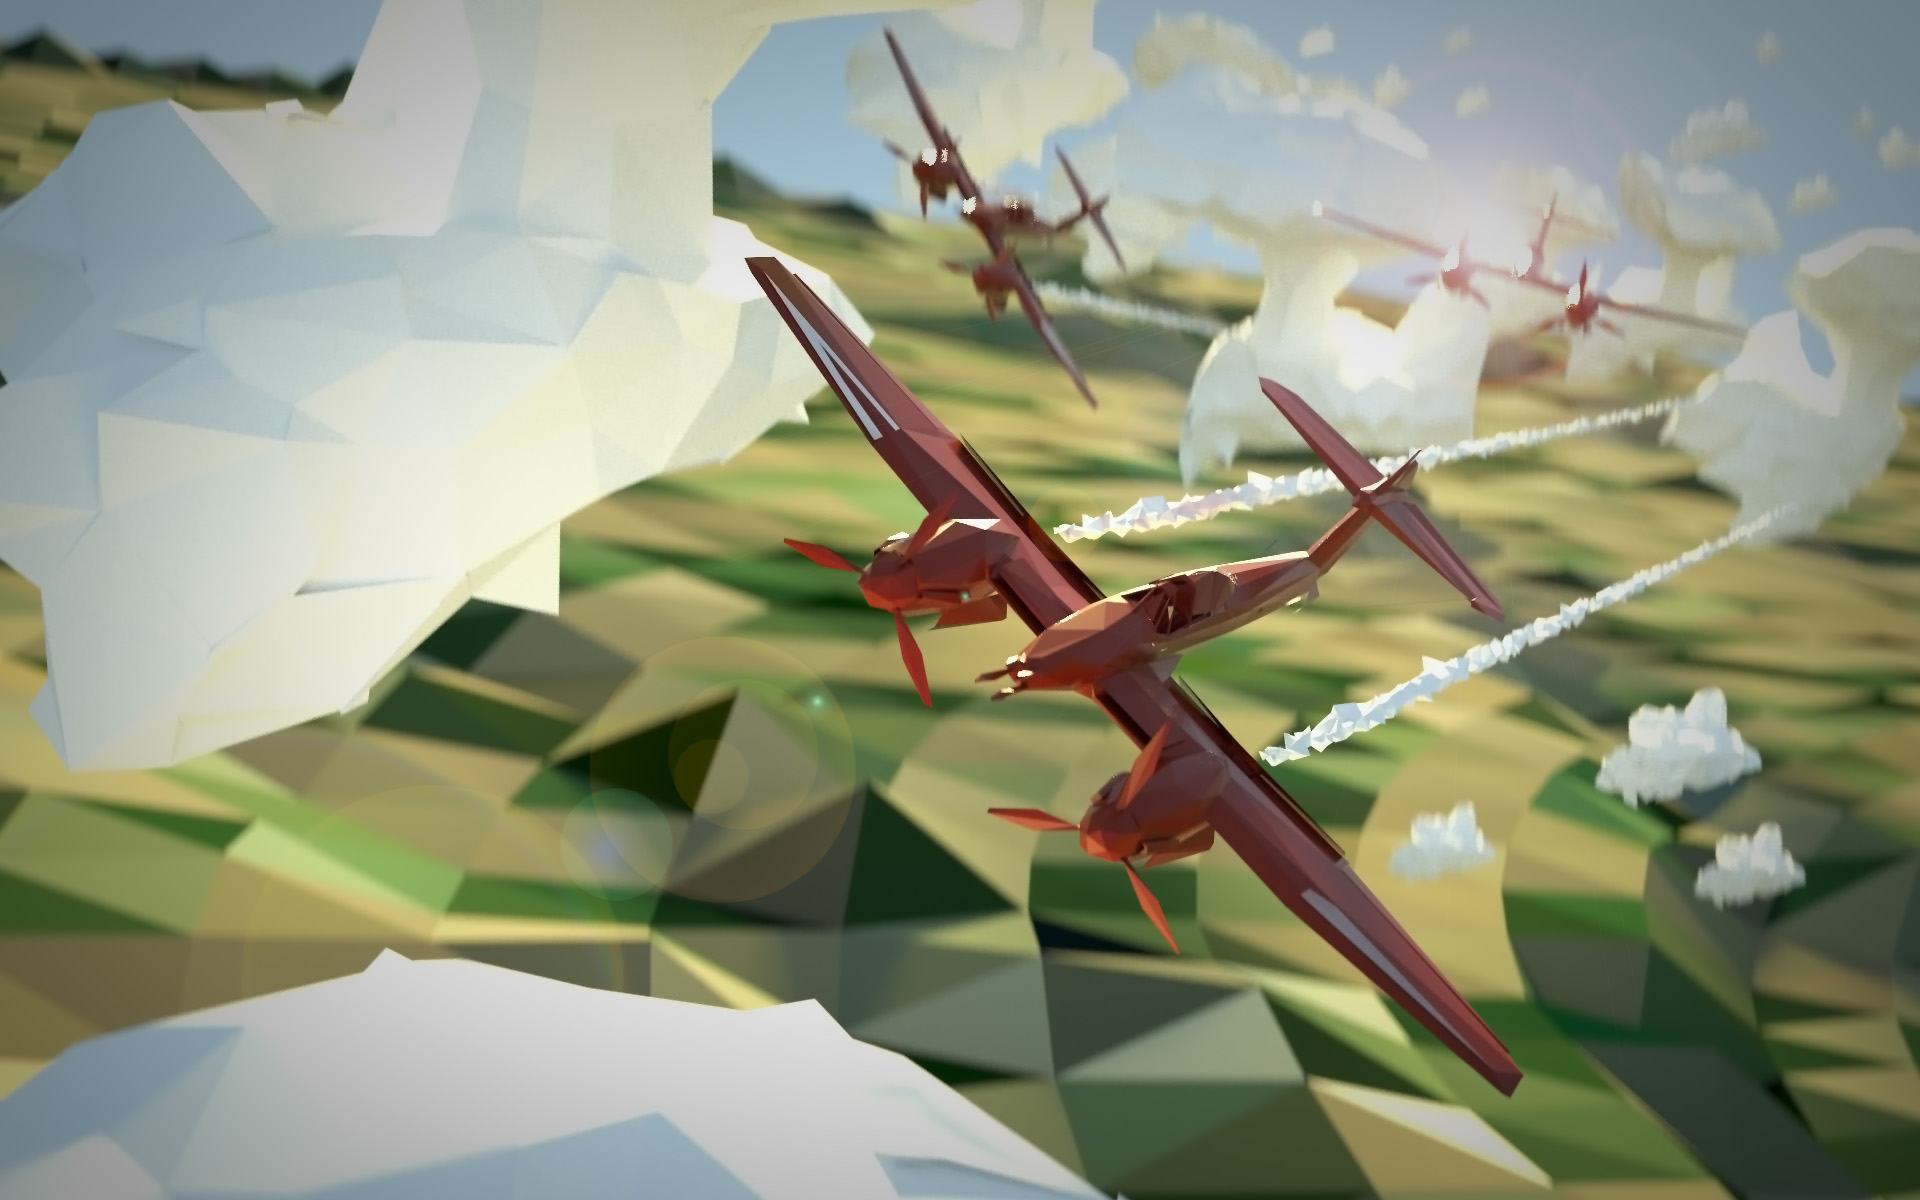 low poly banner art of a westland whirlwind made in Blender with cycles